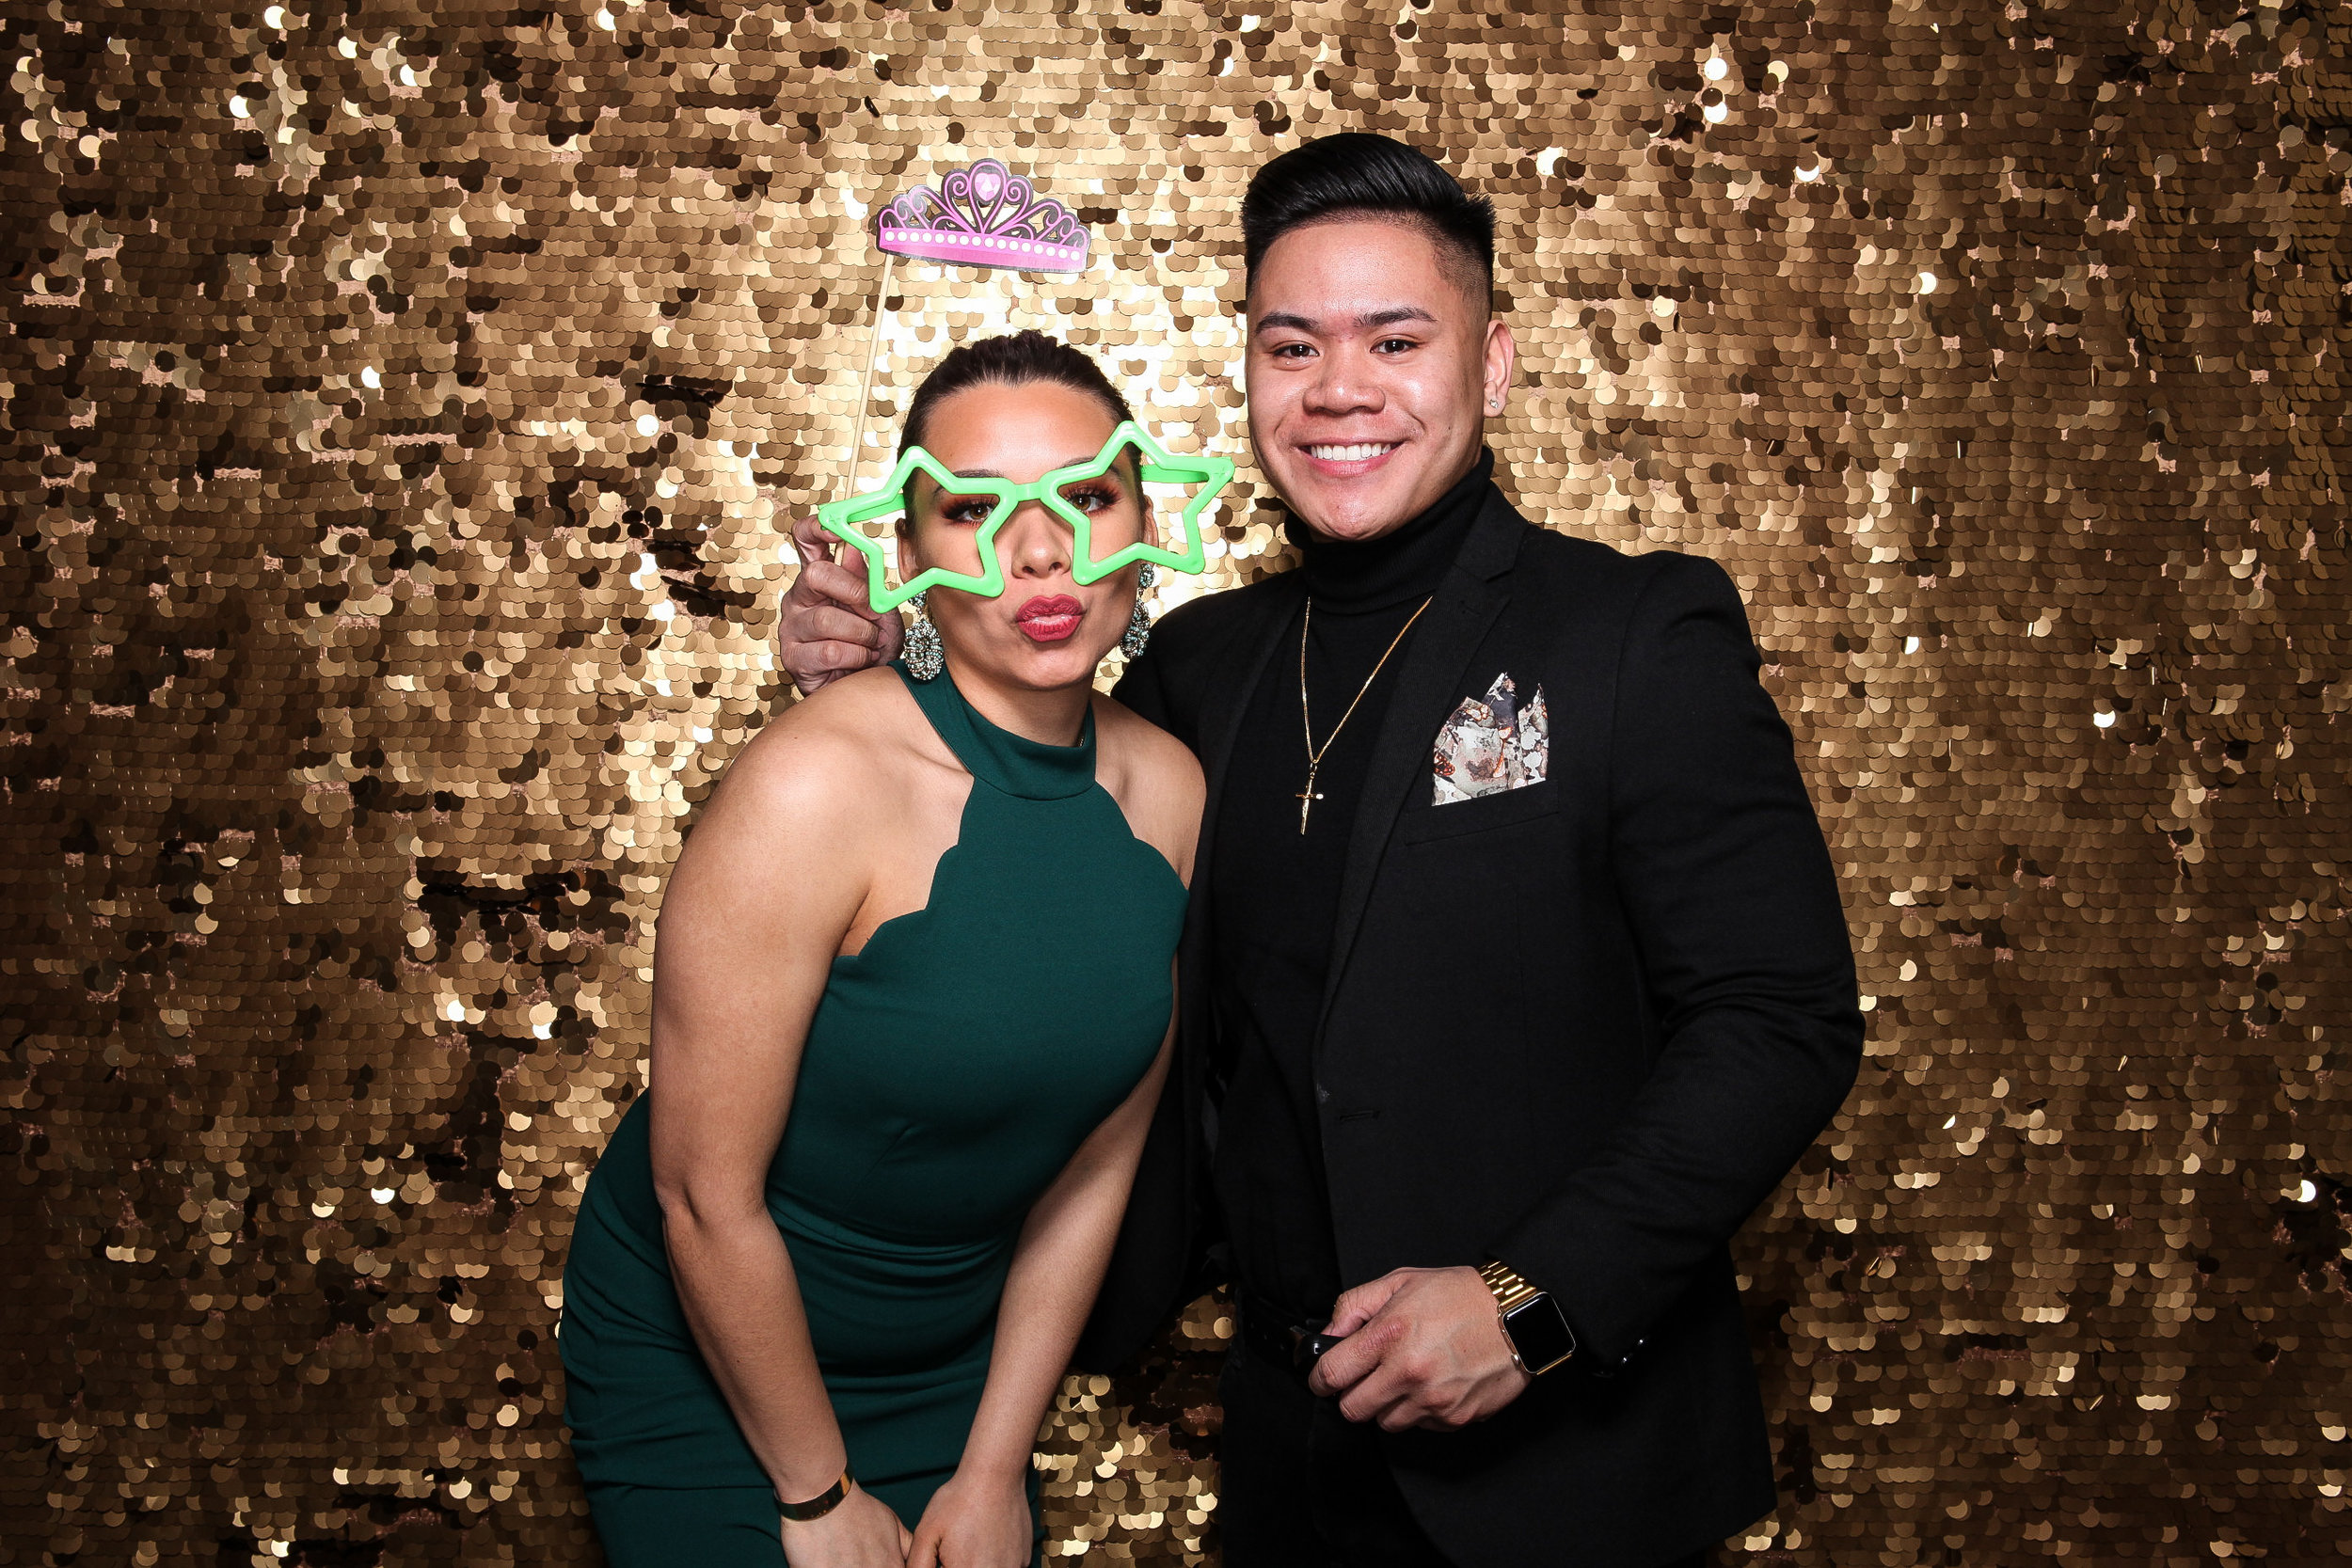 20190503_Adelphi_Senior_Formal-142.jpg